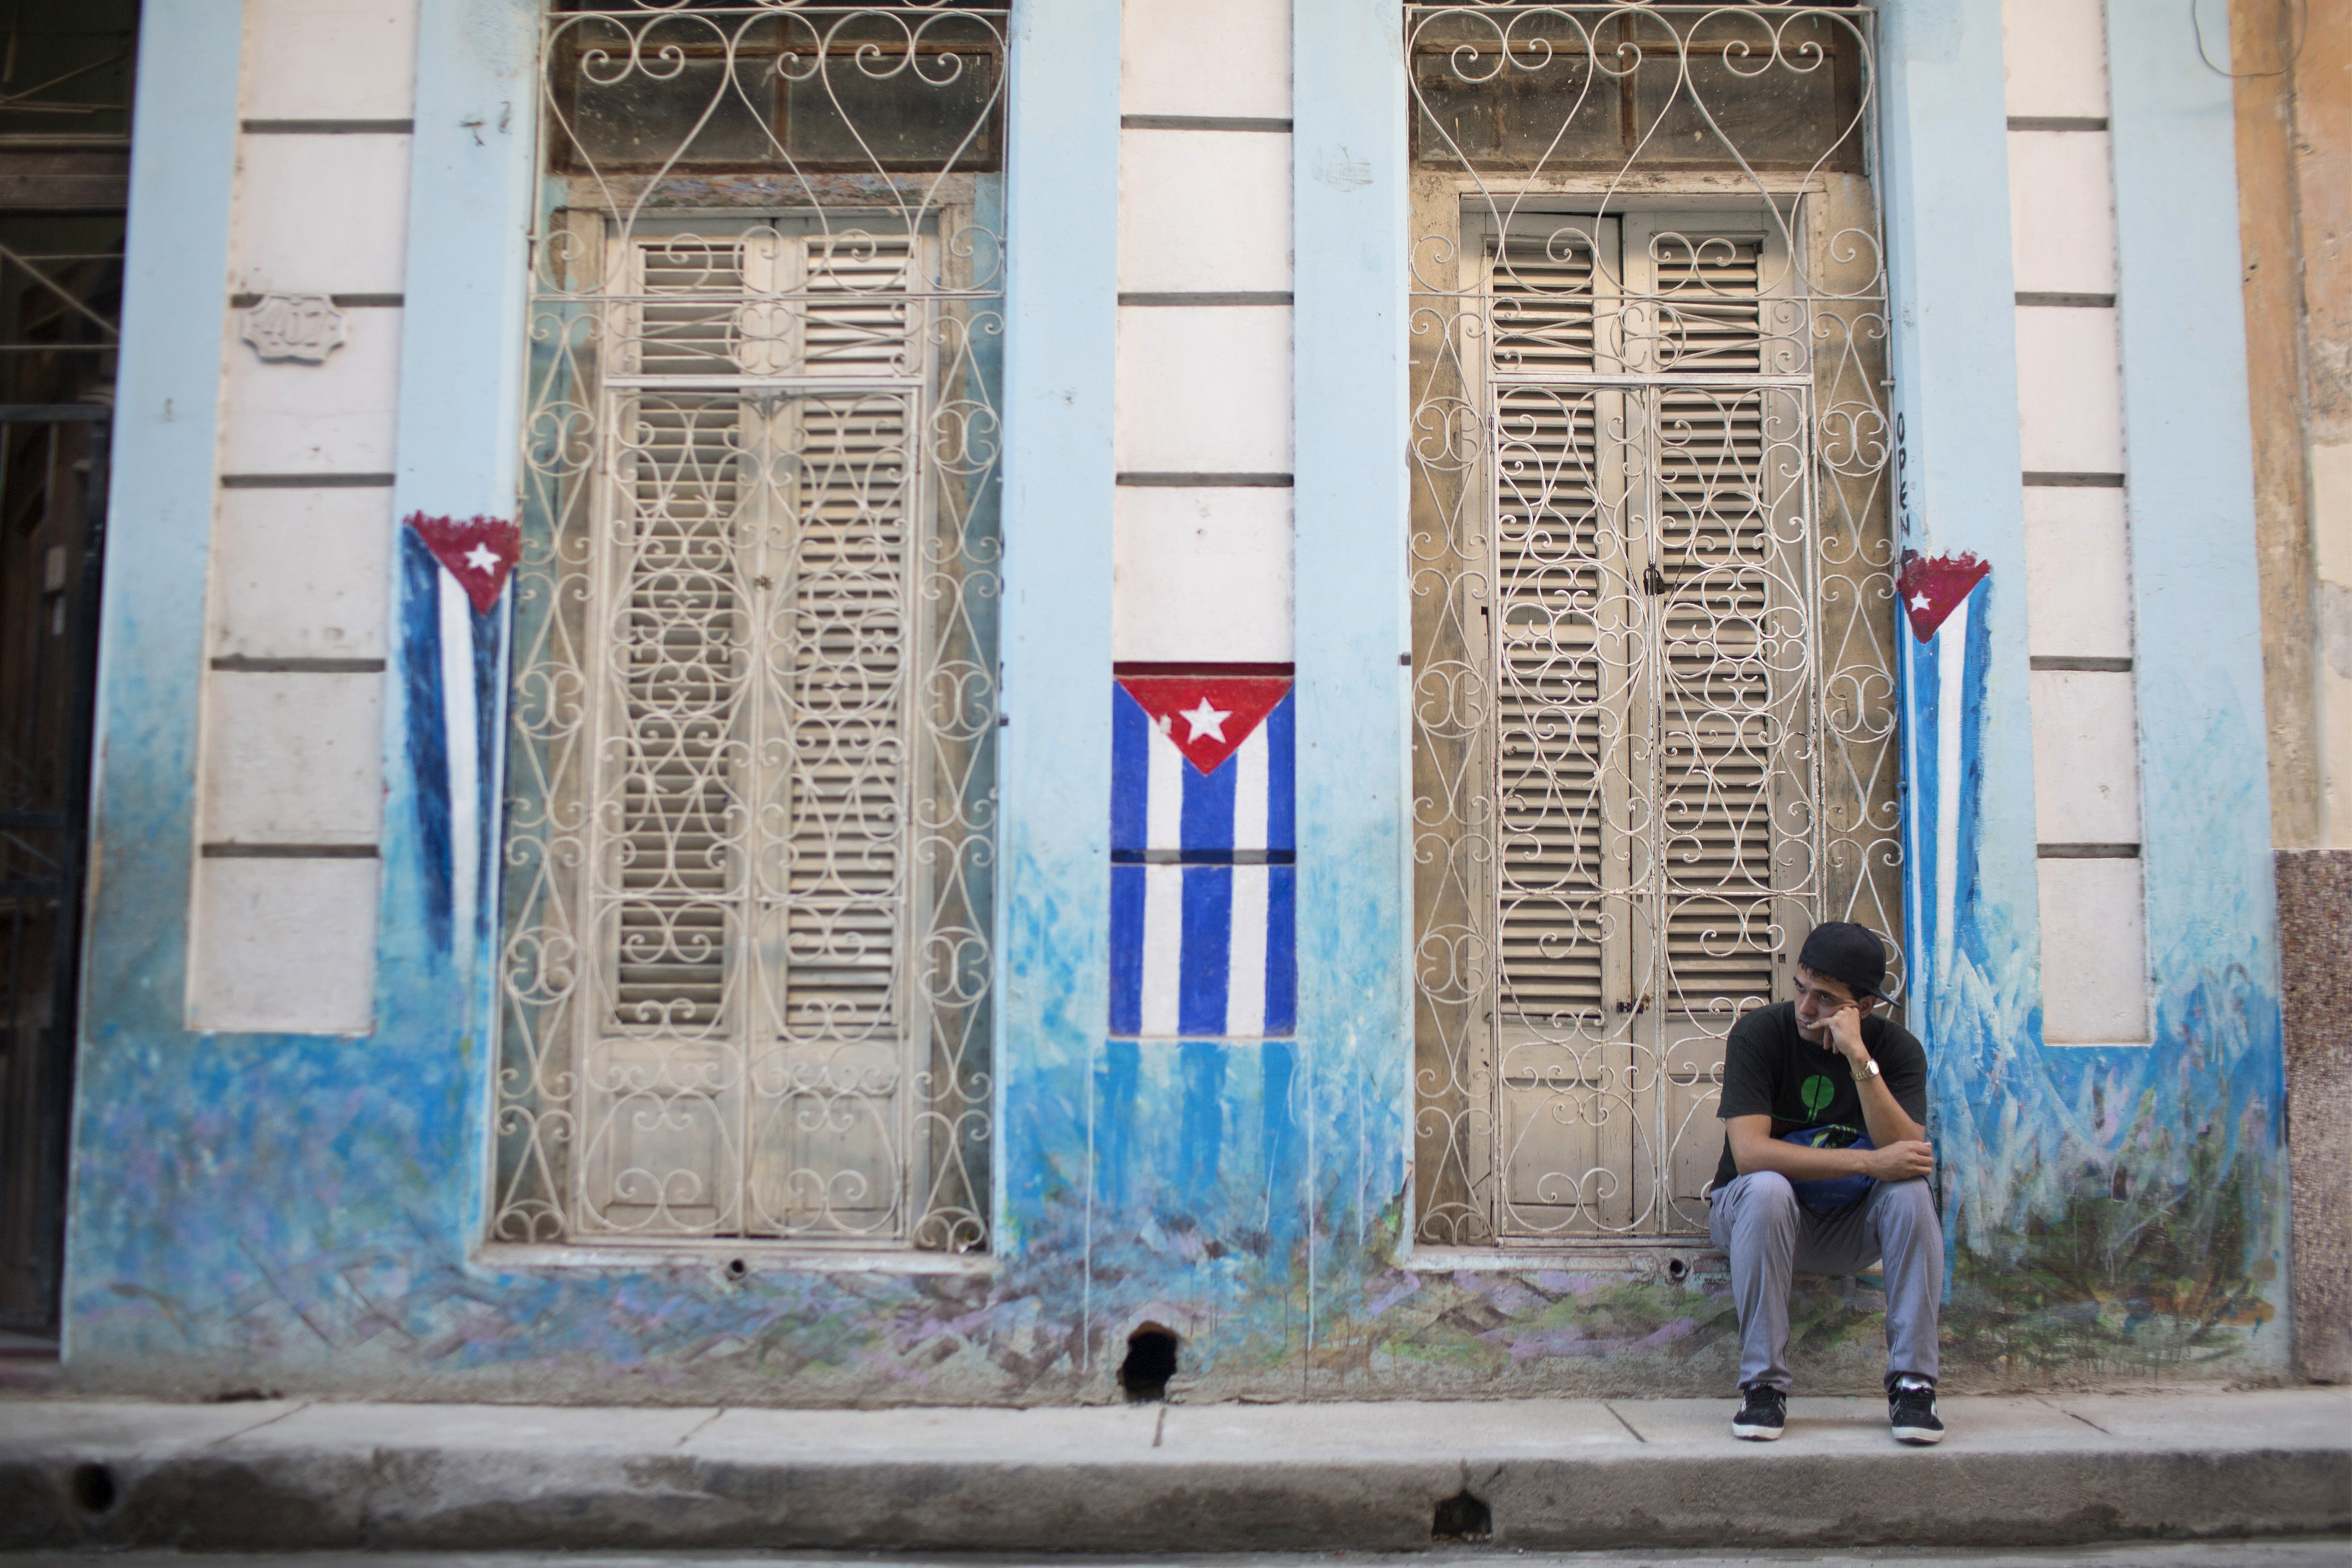 A man sits on the sidewalk next to Cuban National flags painted on the walls in downtown Havana, January 22, 2015. The United States and Cuba began historic discussions on restoring diplomatic relations on Thursday, aiming to reach agreement on the opening of embassies in each other's countries. REUTERS/Alexandre Meneghini (CUBA - Tags: SOCIETY POLITICS) - RTR4MI75